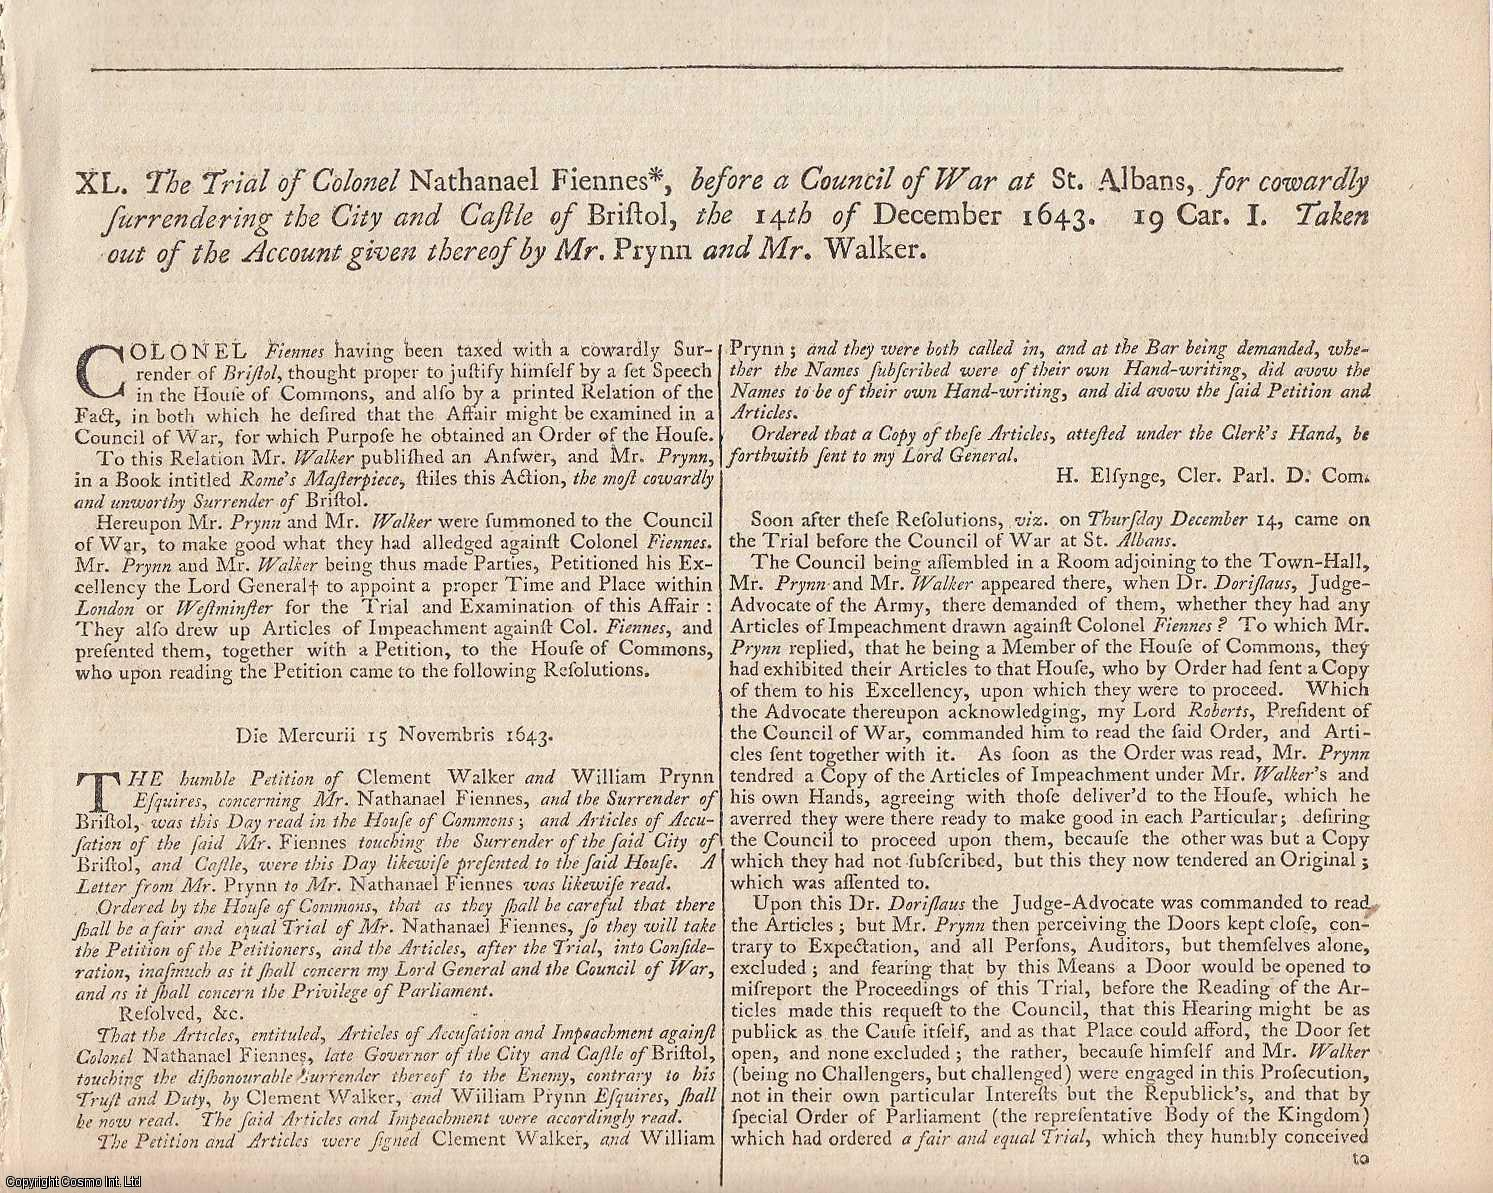 ENGLISH CIVIL WAR.  The Trial of Colonel Nathaniel Fiennes, before a Council of War at St Albans, for cowardly surrendering the City and Castle of Bristol, 14th December 1643., [Trial].